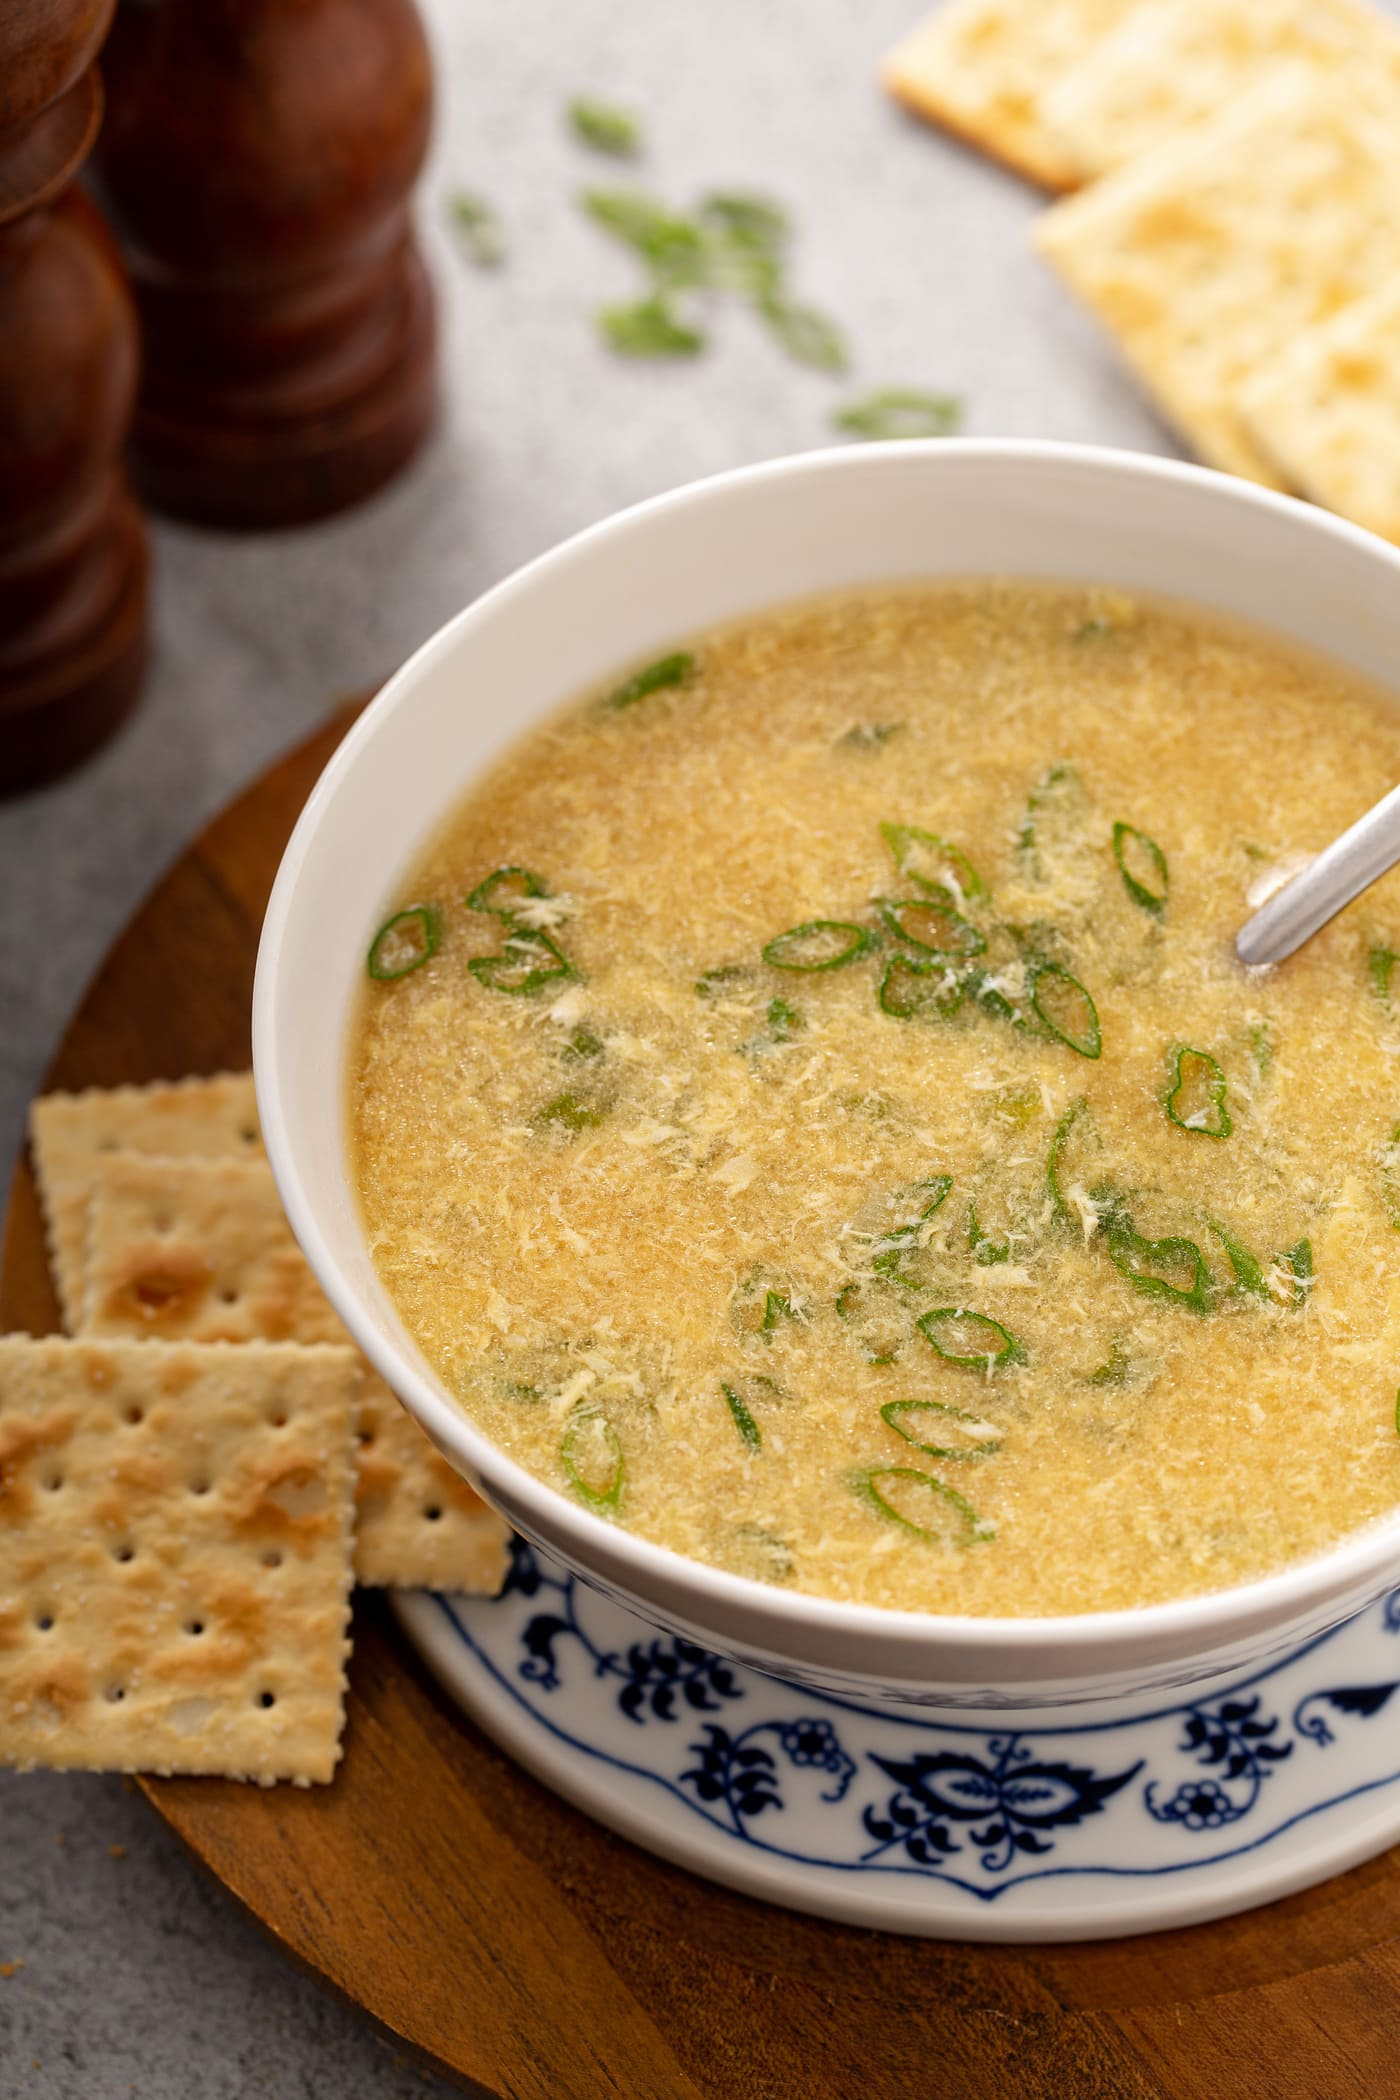 A bowl of egg drop soup with slices of green onion in the soup. Saltine crackers are beside the soup and a salt and peppers shaker is in the background.